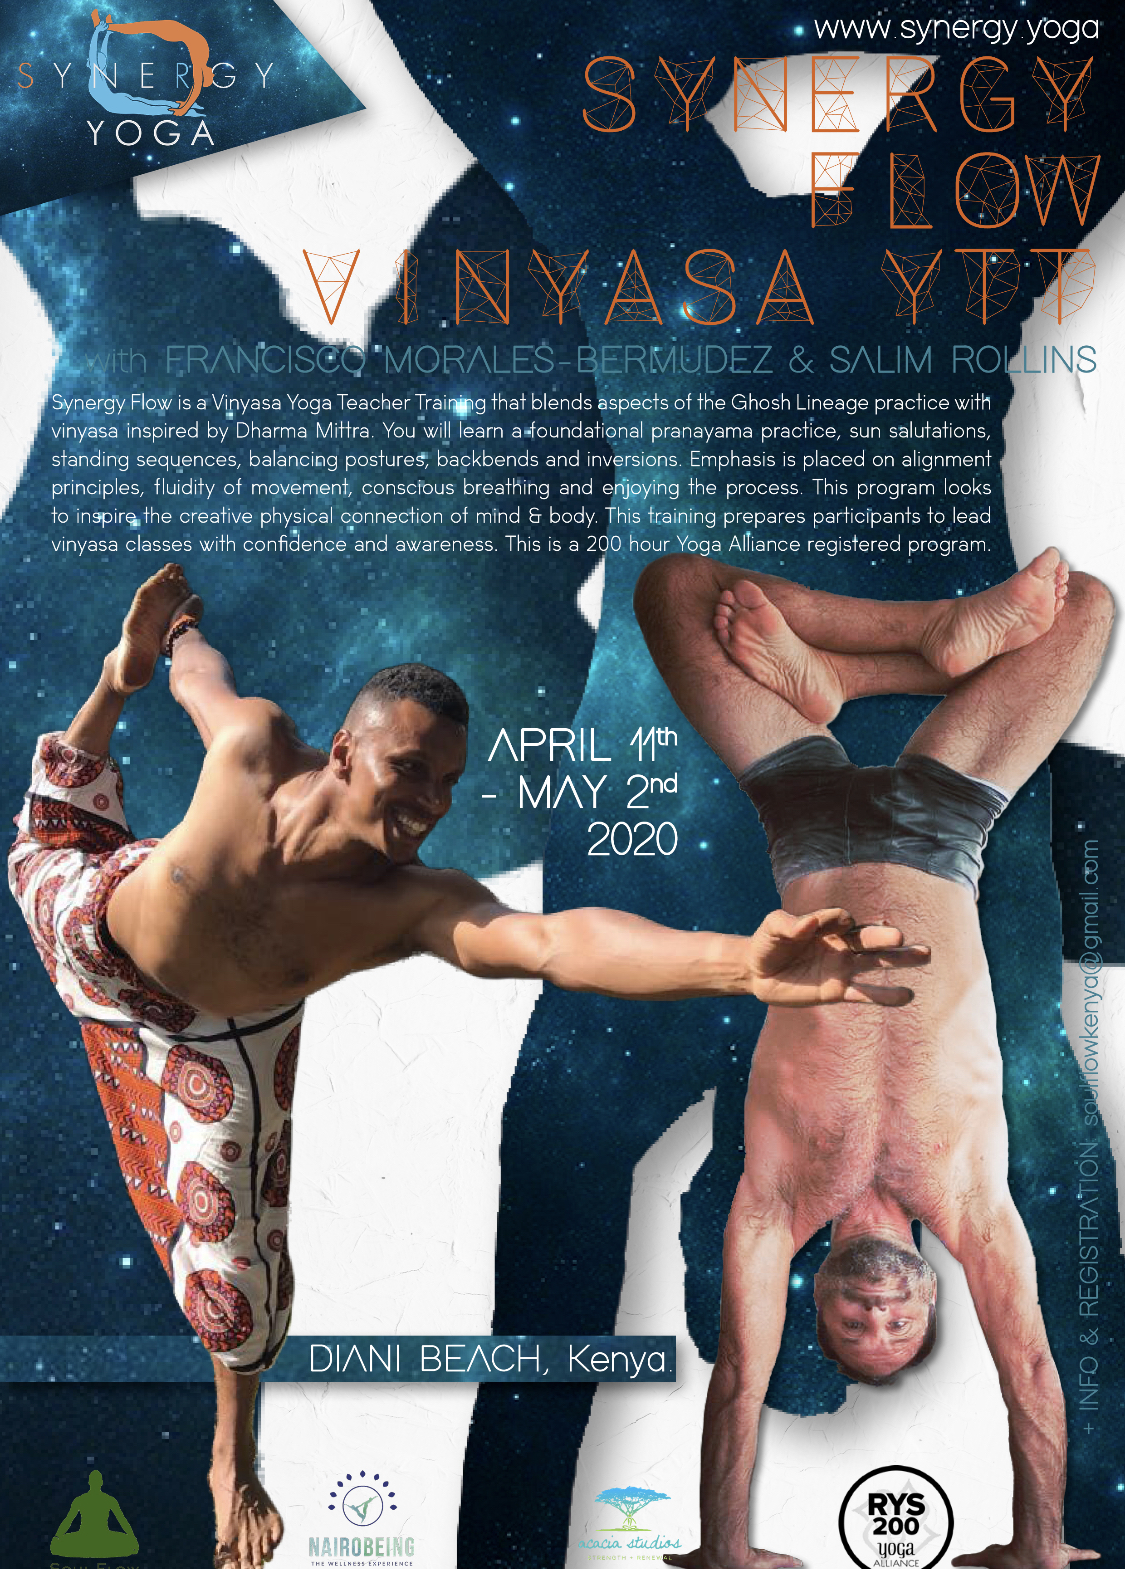 2020 First Synergy Flow Vinyasa Teacher Training in Nairobi Kenya w Salim Rollins